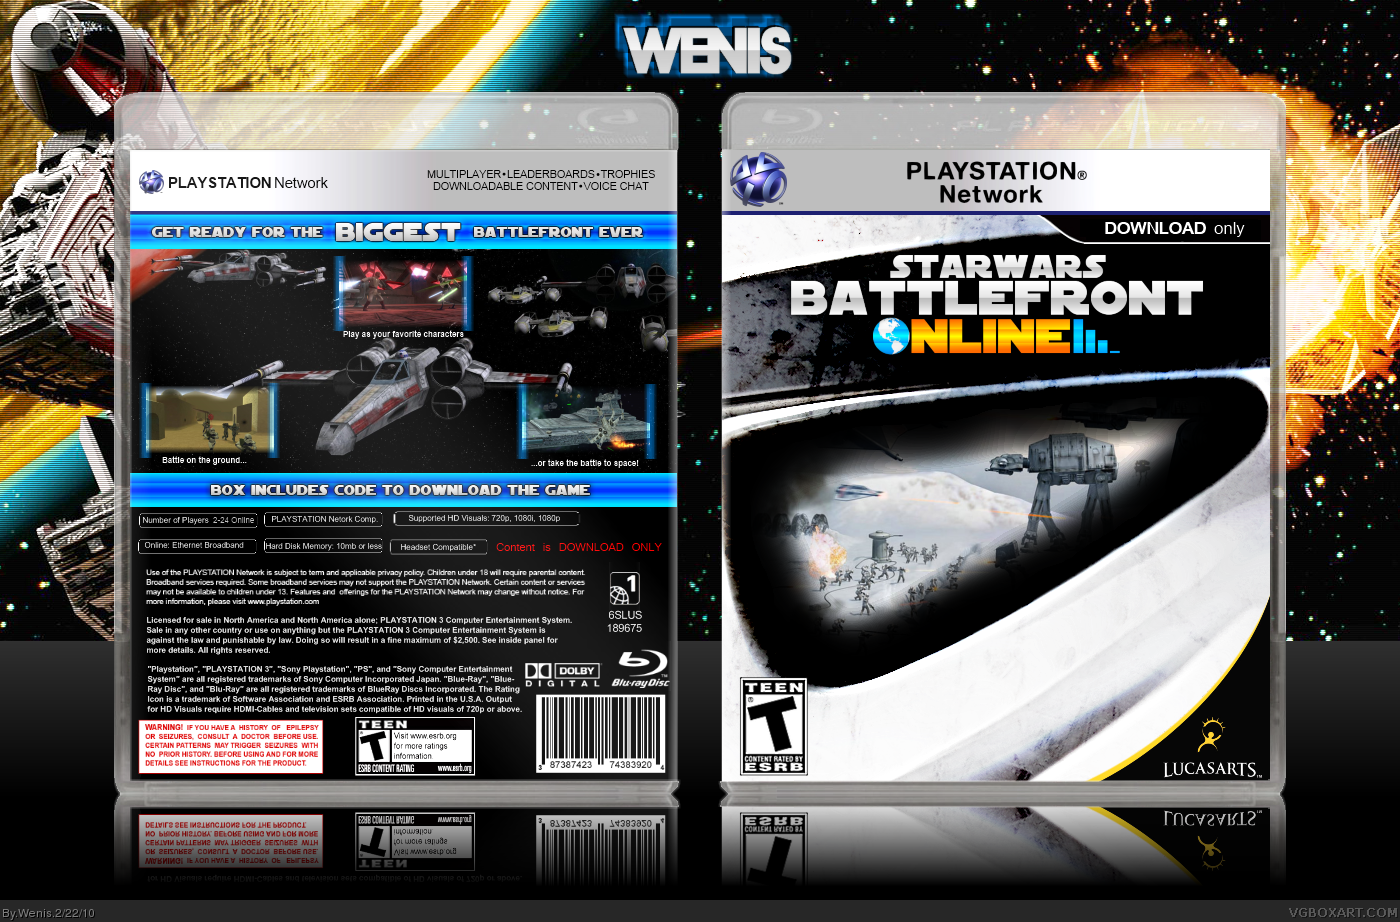 Star Wars Battlefront: Online box cover